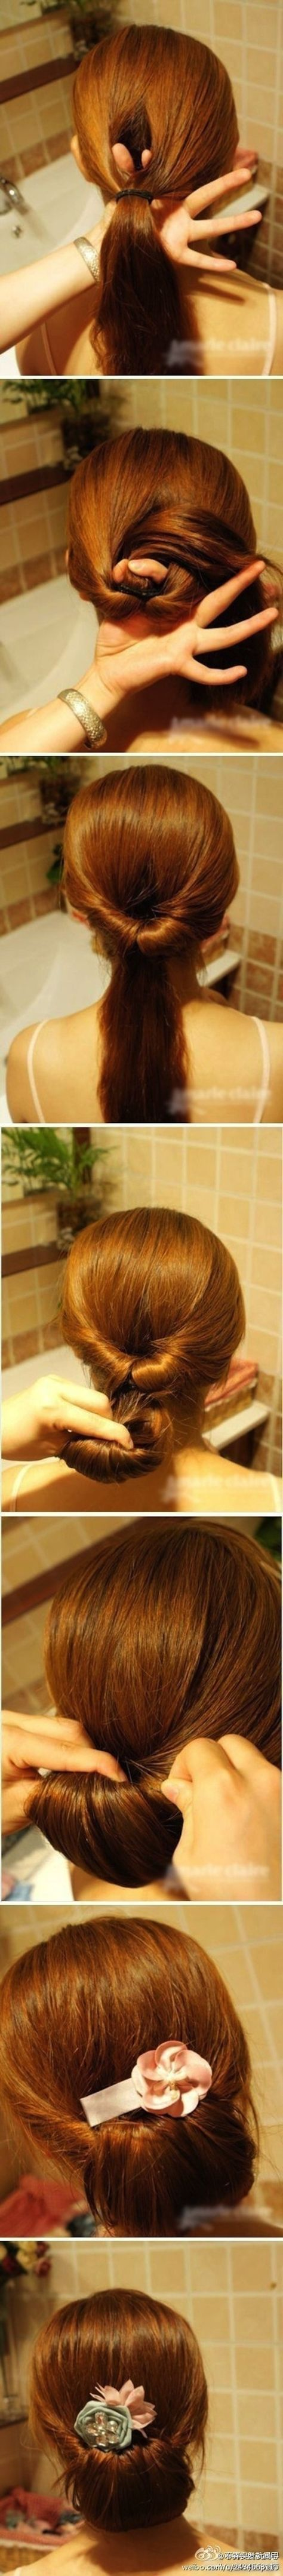 Easy updo step by step hair pictorial rodete hare pinterest